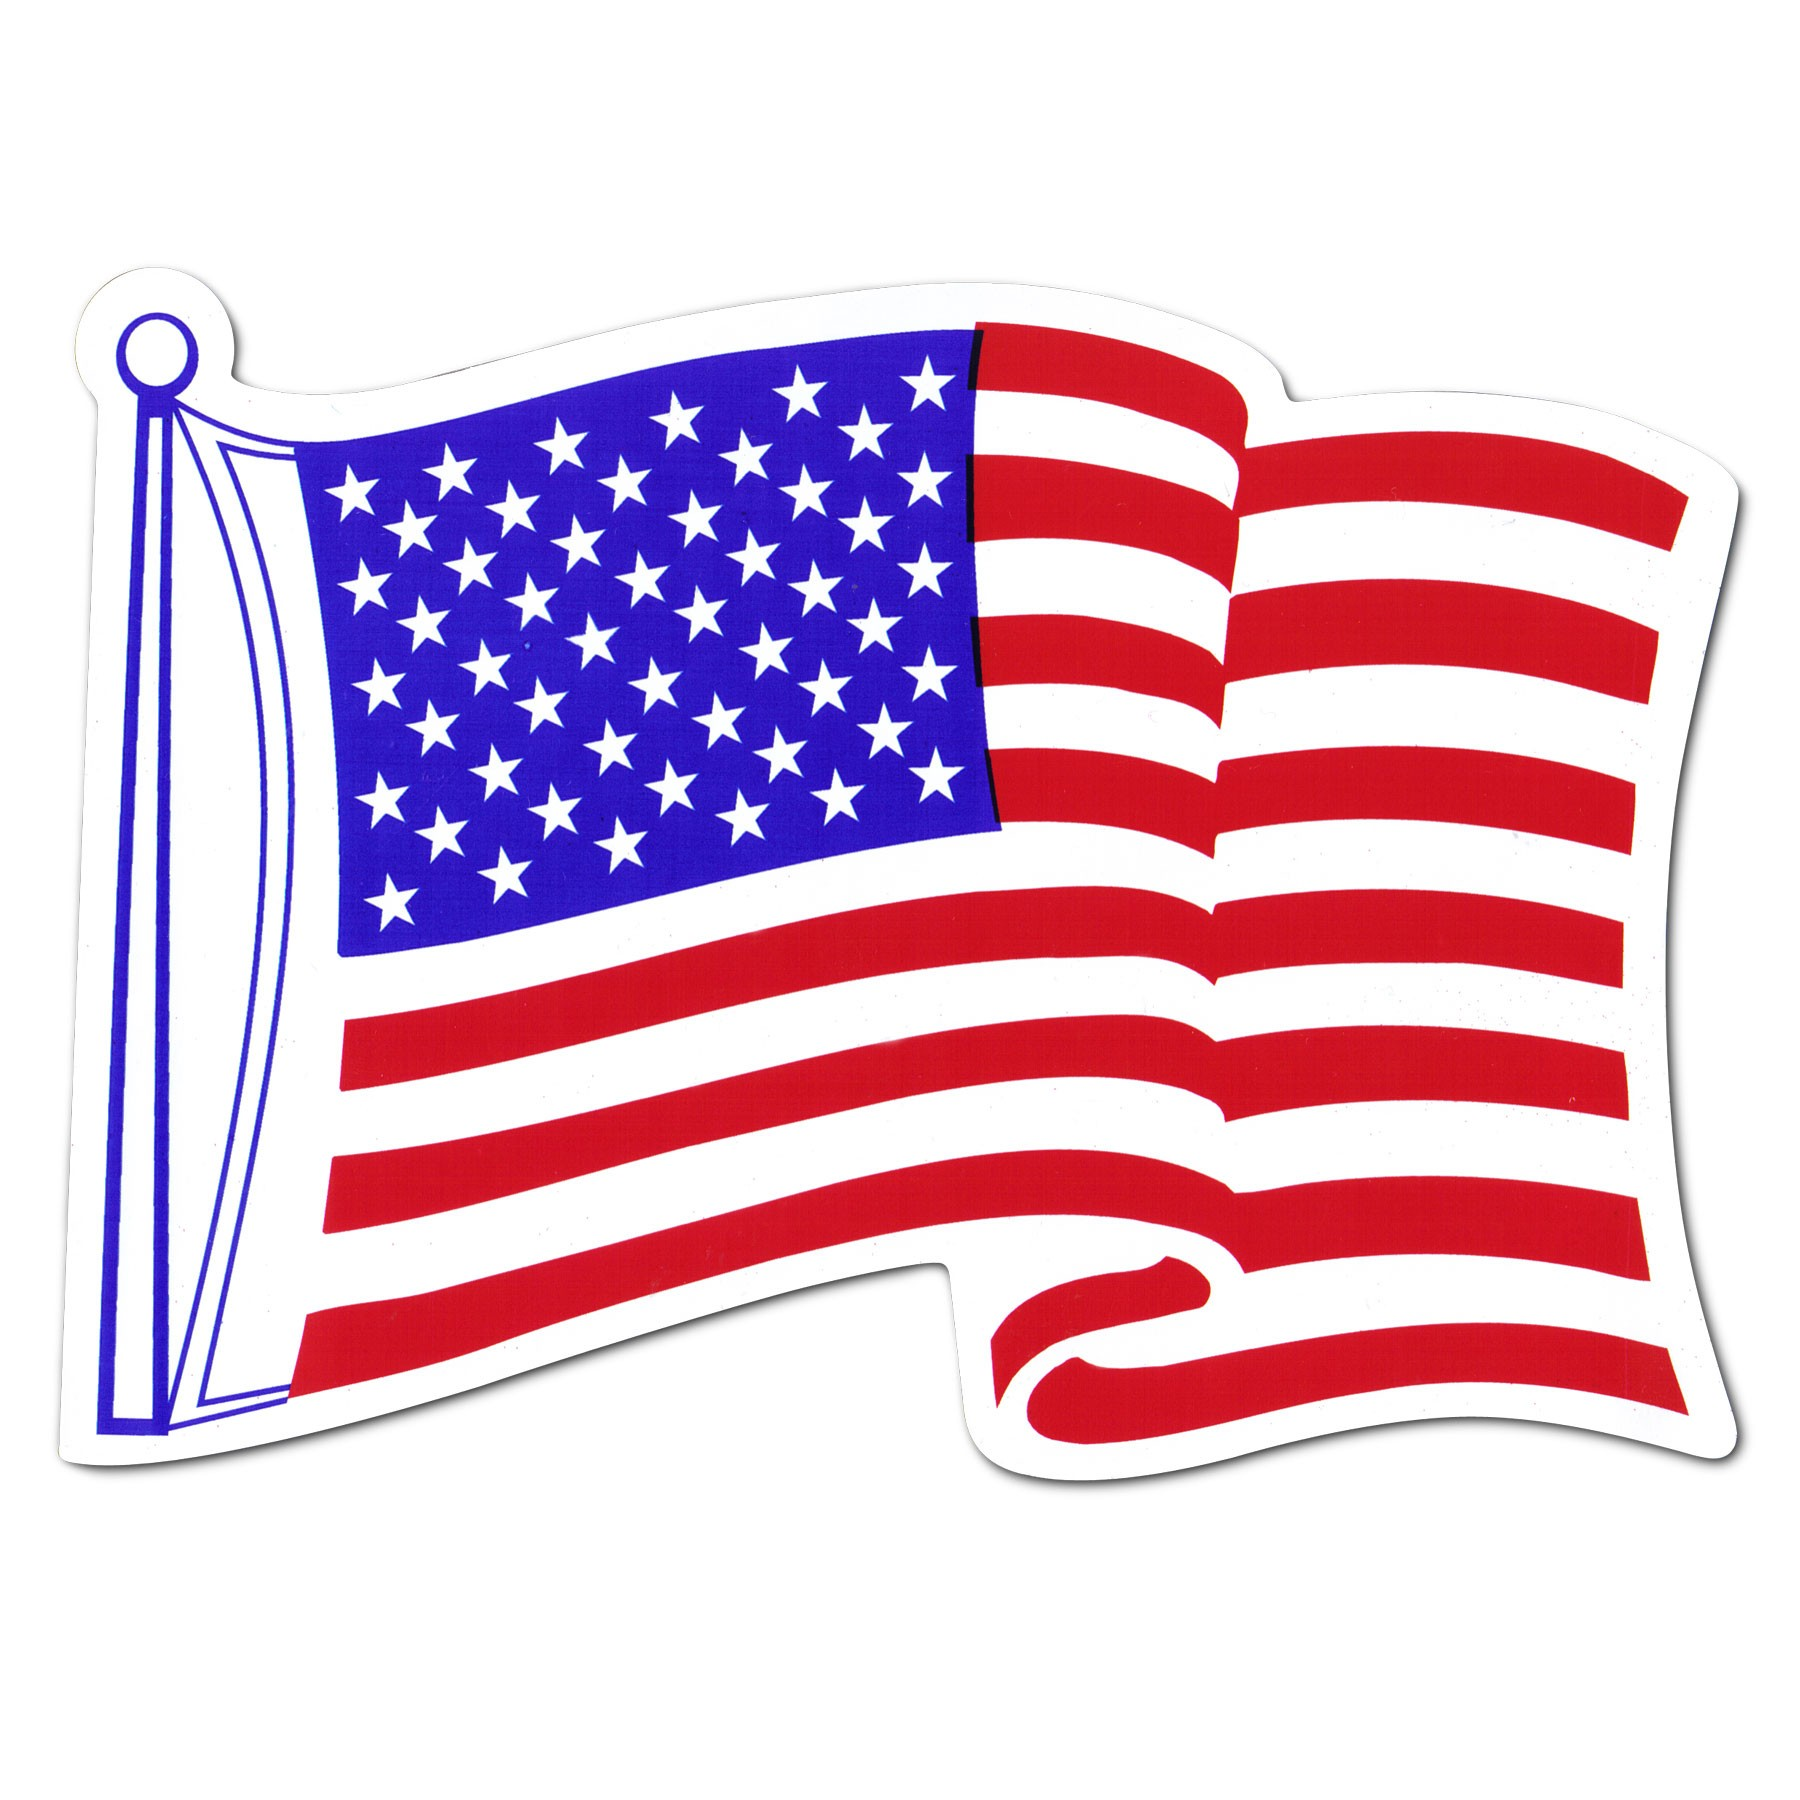 American clipart flying. Flag